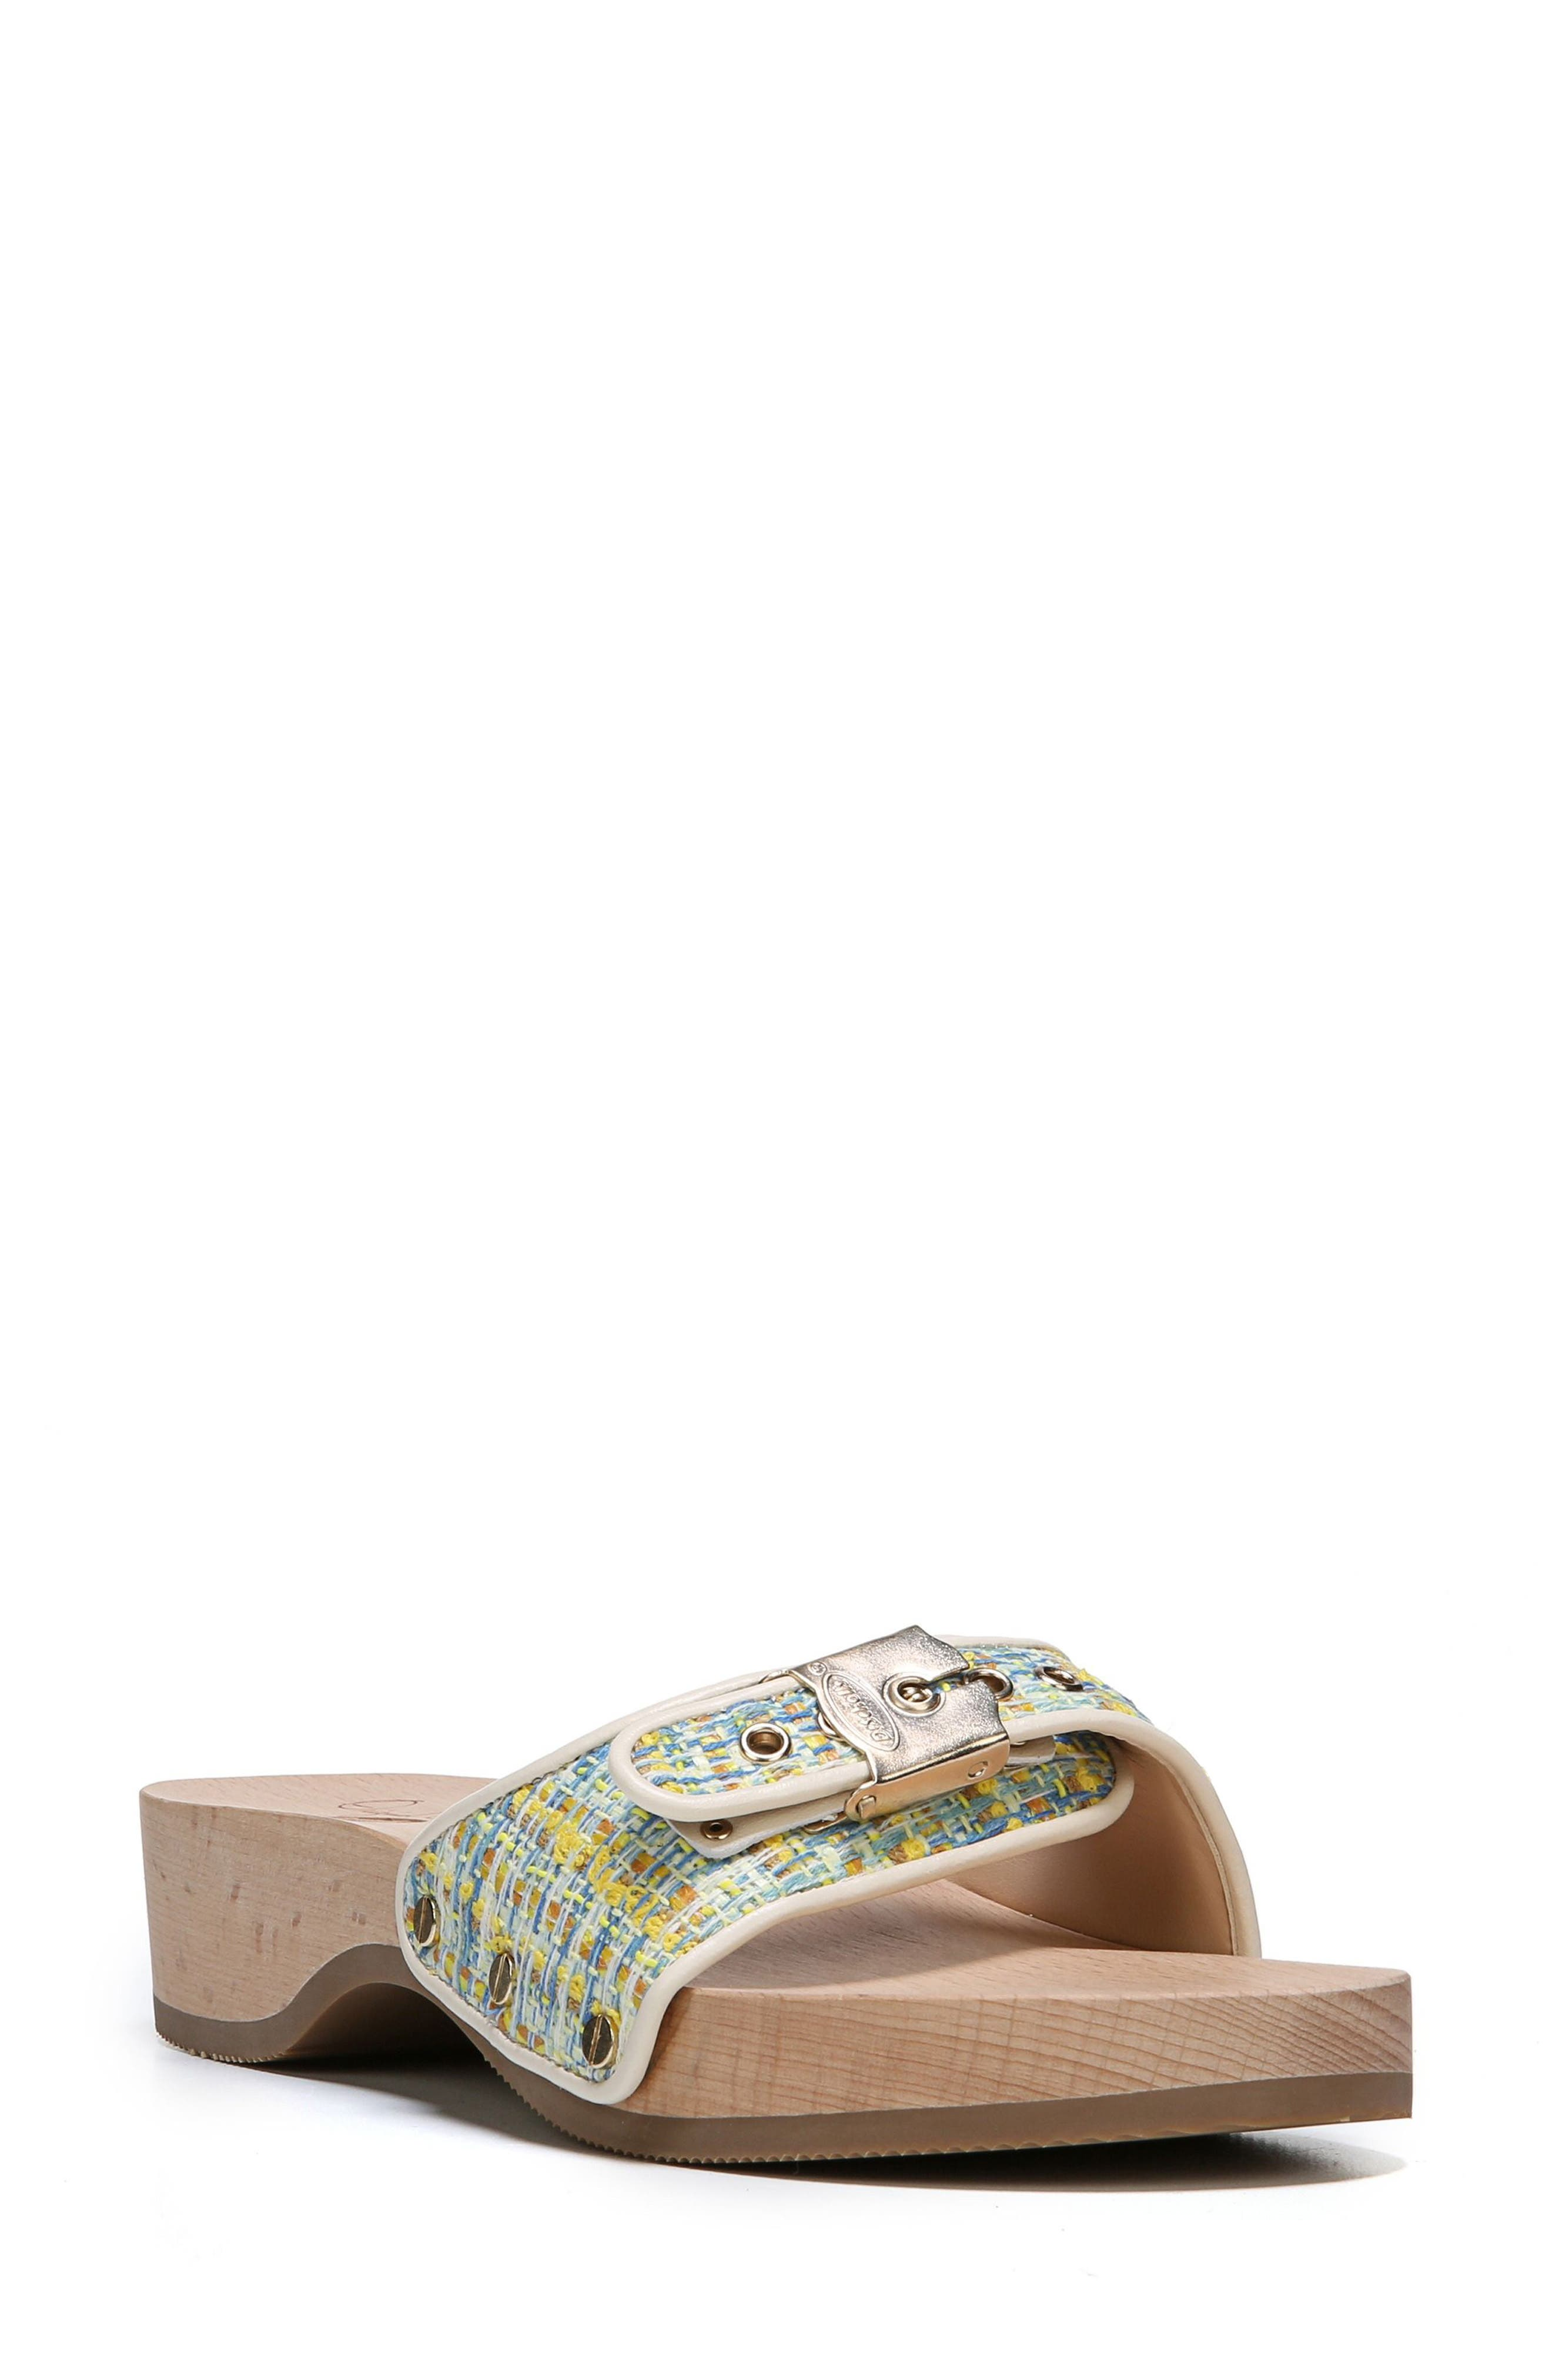 Original Collection Sandal,                             Main thumbnail 1, color,                             Yellow/ Ivory Multi